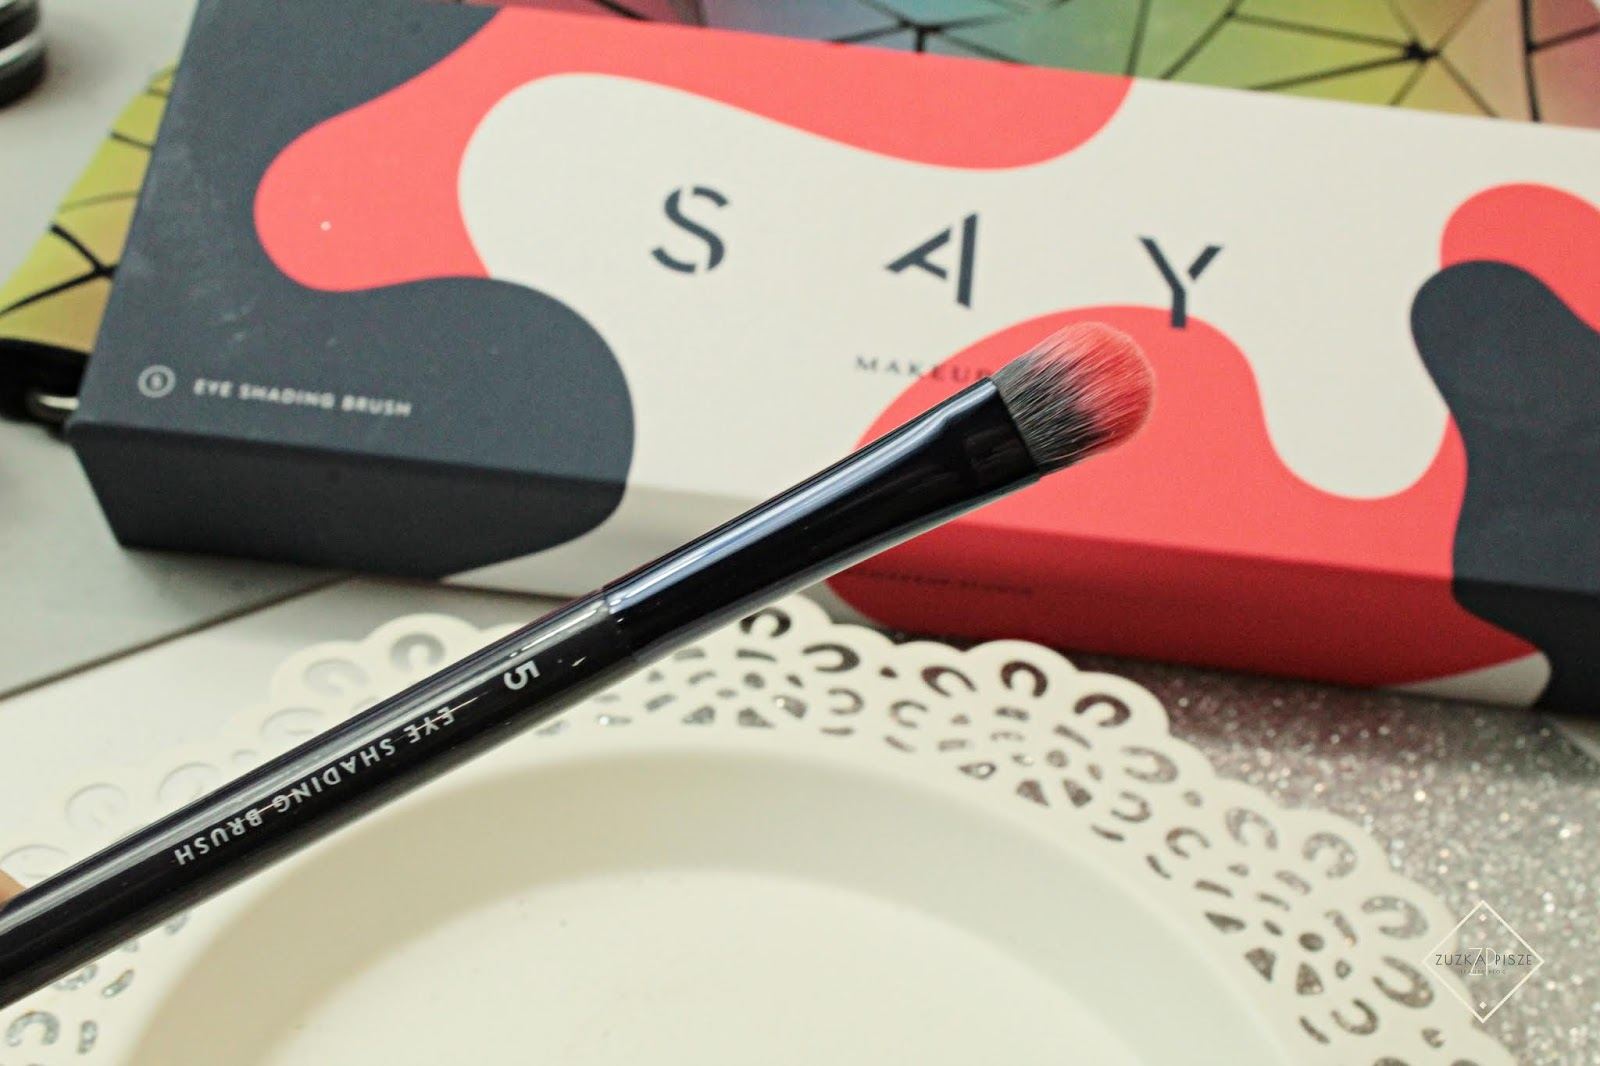 Pędzel do cieni, EYE SHADING BRUSH NR 5 SAY MAKEUP